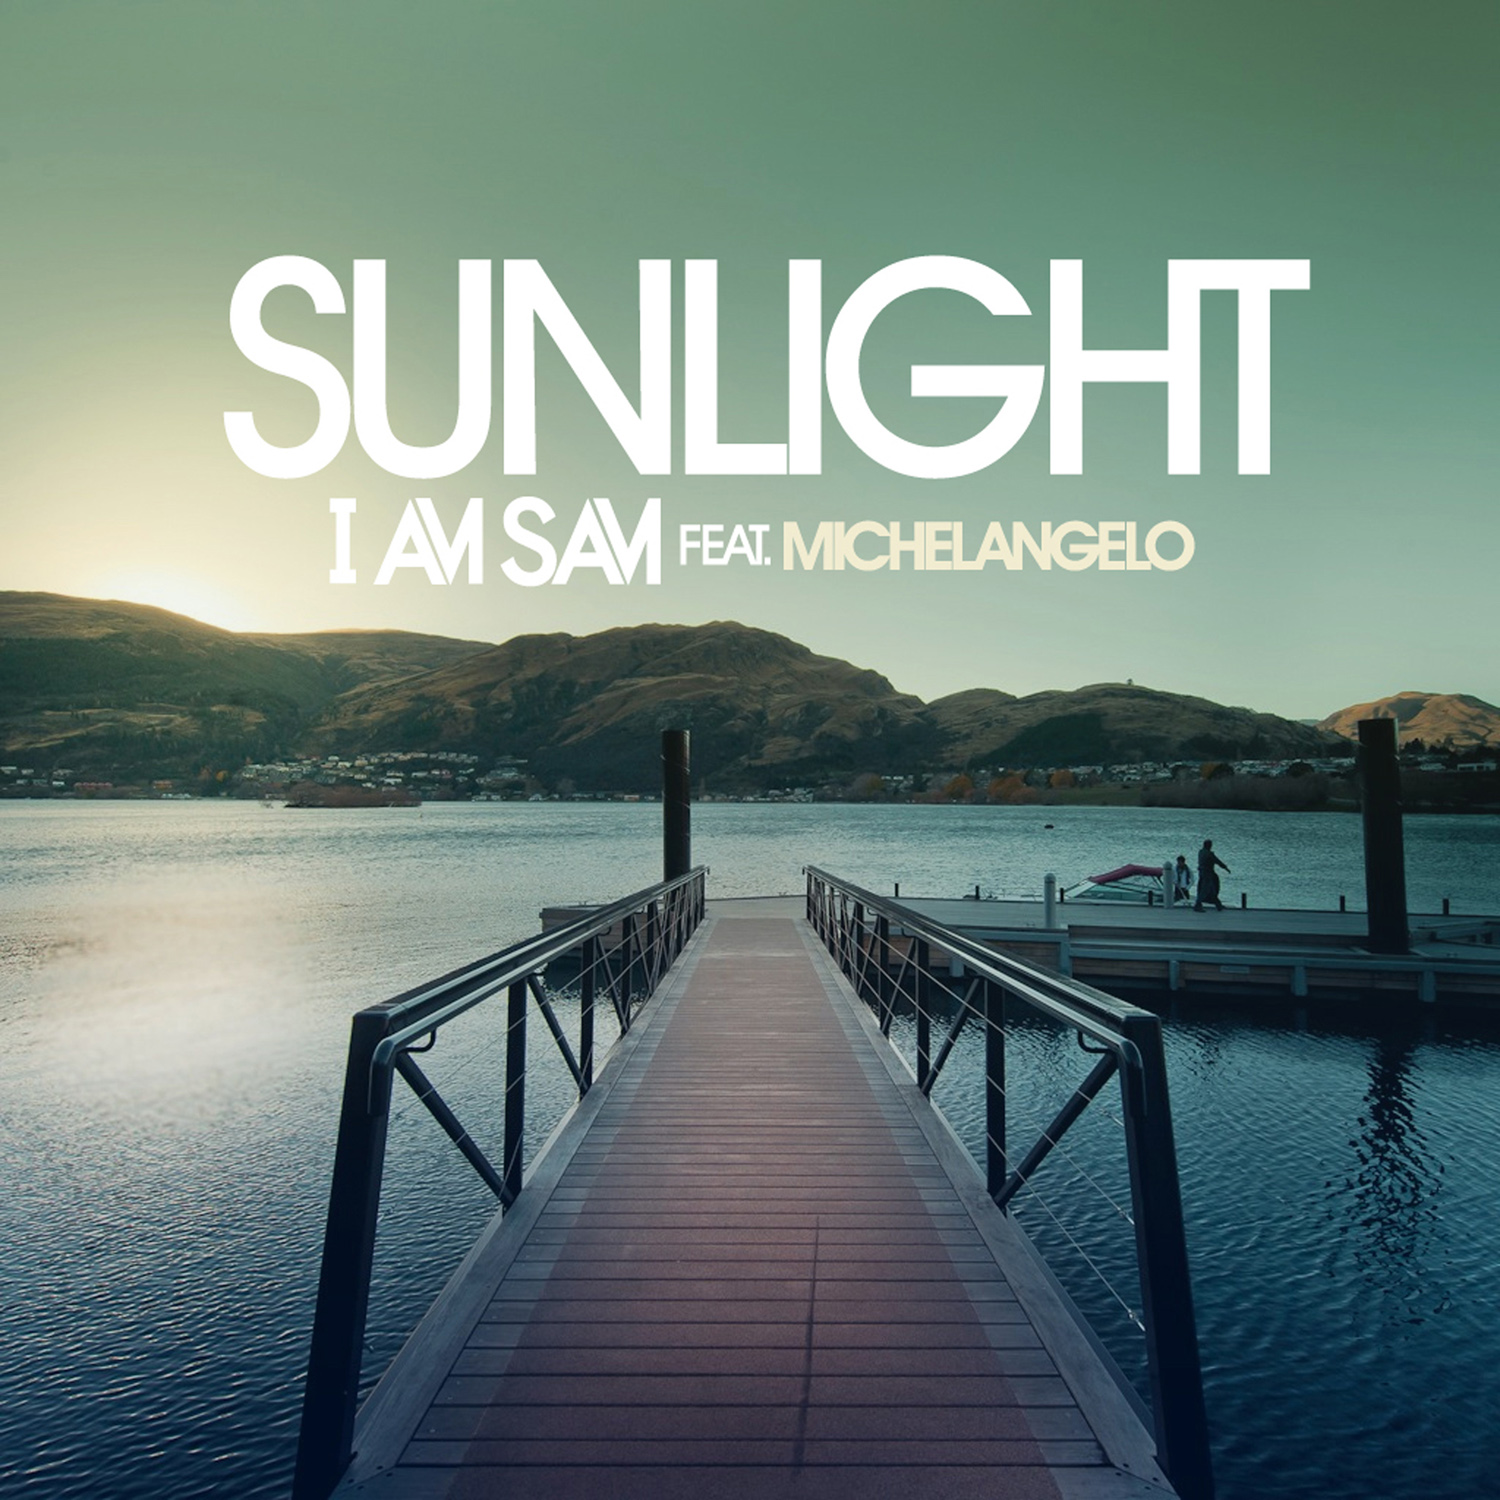 I Am Sam feat. Michelangelo - Sunlight (Original Mix)